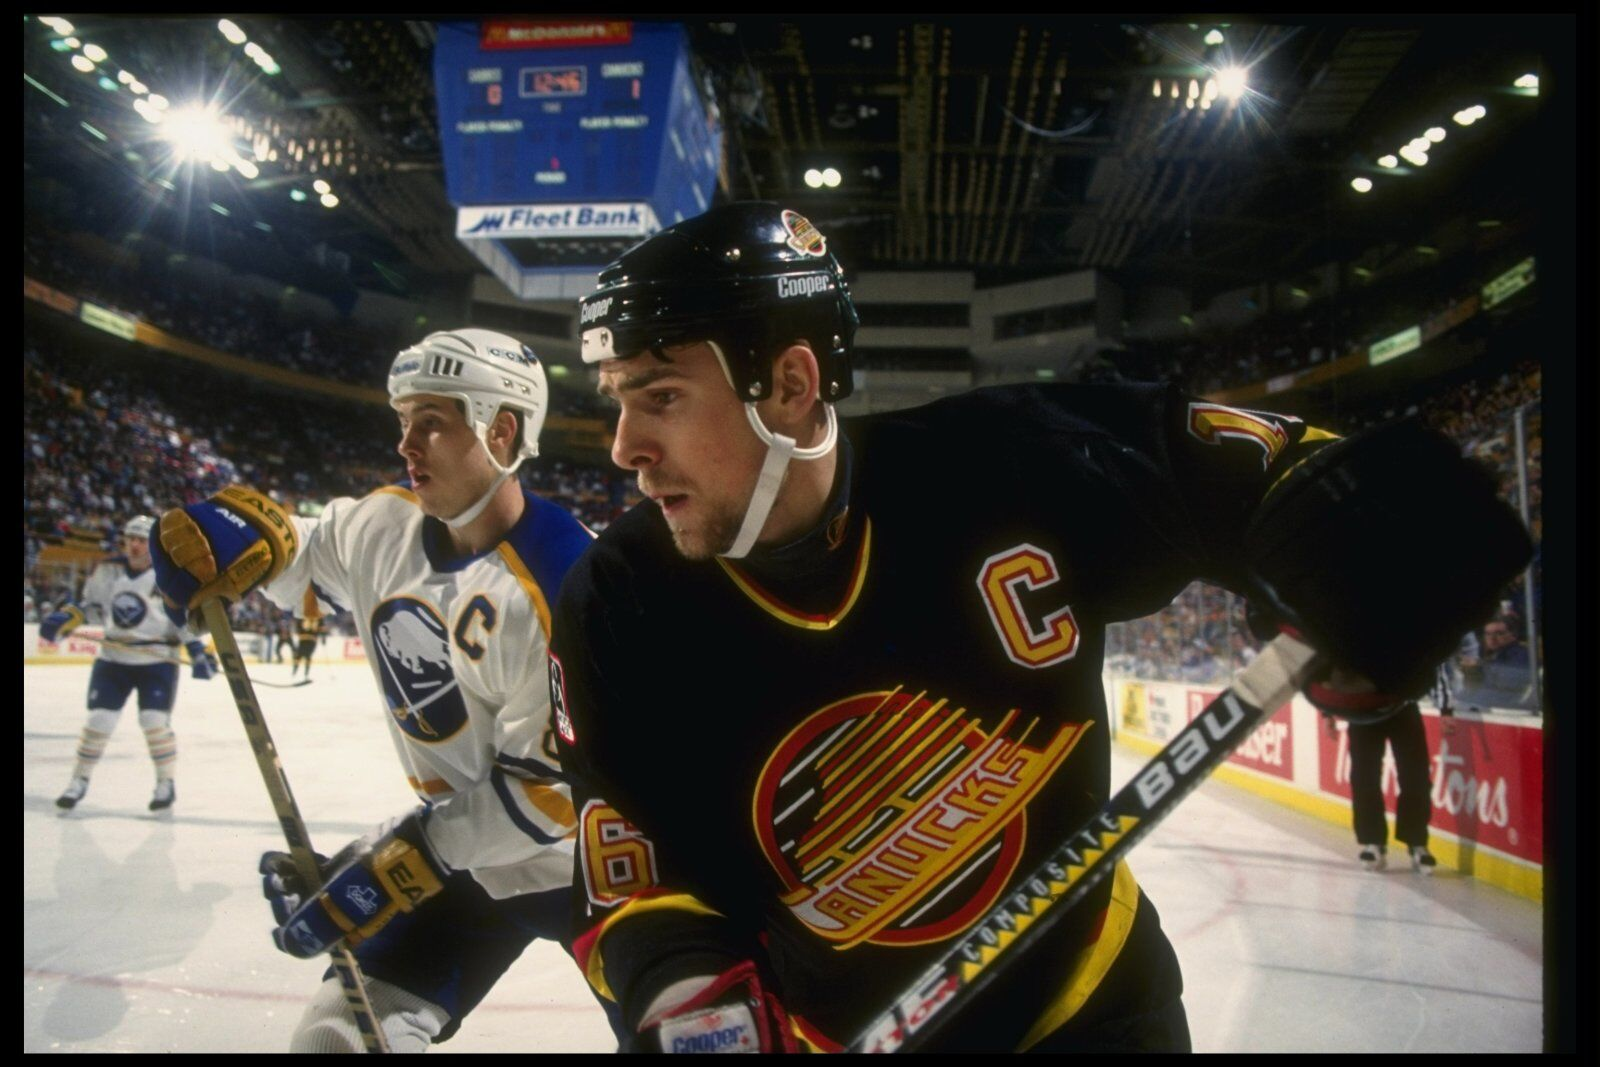 Canucks to bring back old-school Flying Skate jersey in 2019-20 8f83f4c75